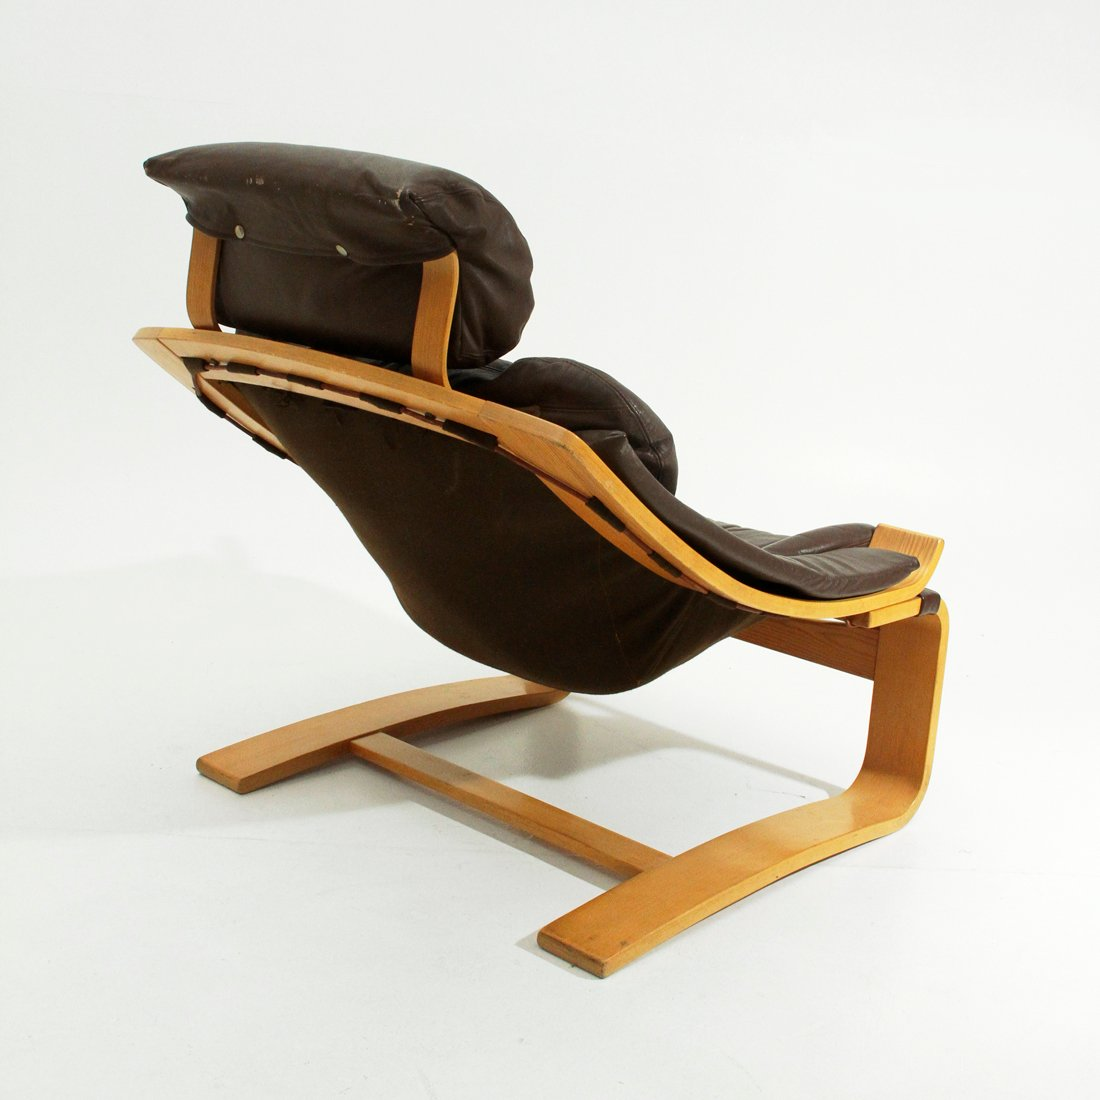 Leather Armchair Canada Kroken Leather Armchair By Ake Fribyter For Nelo 1970s